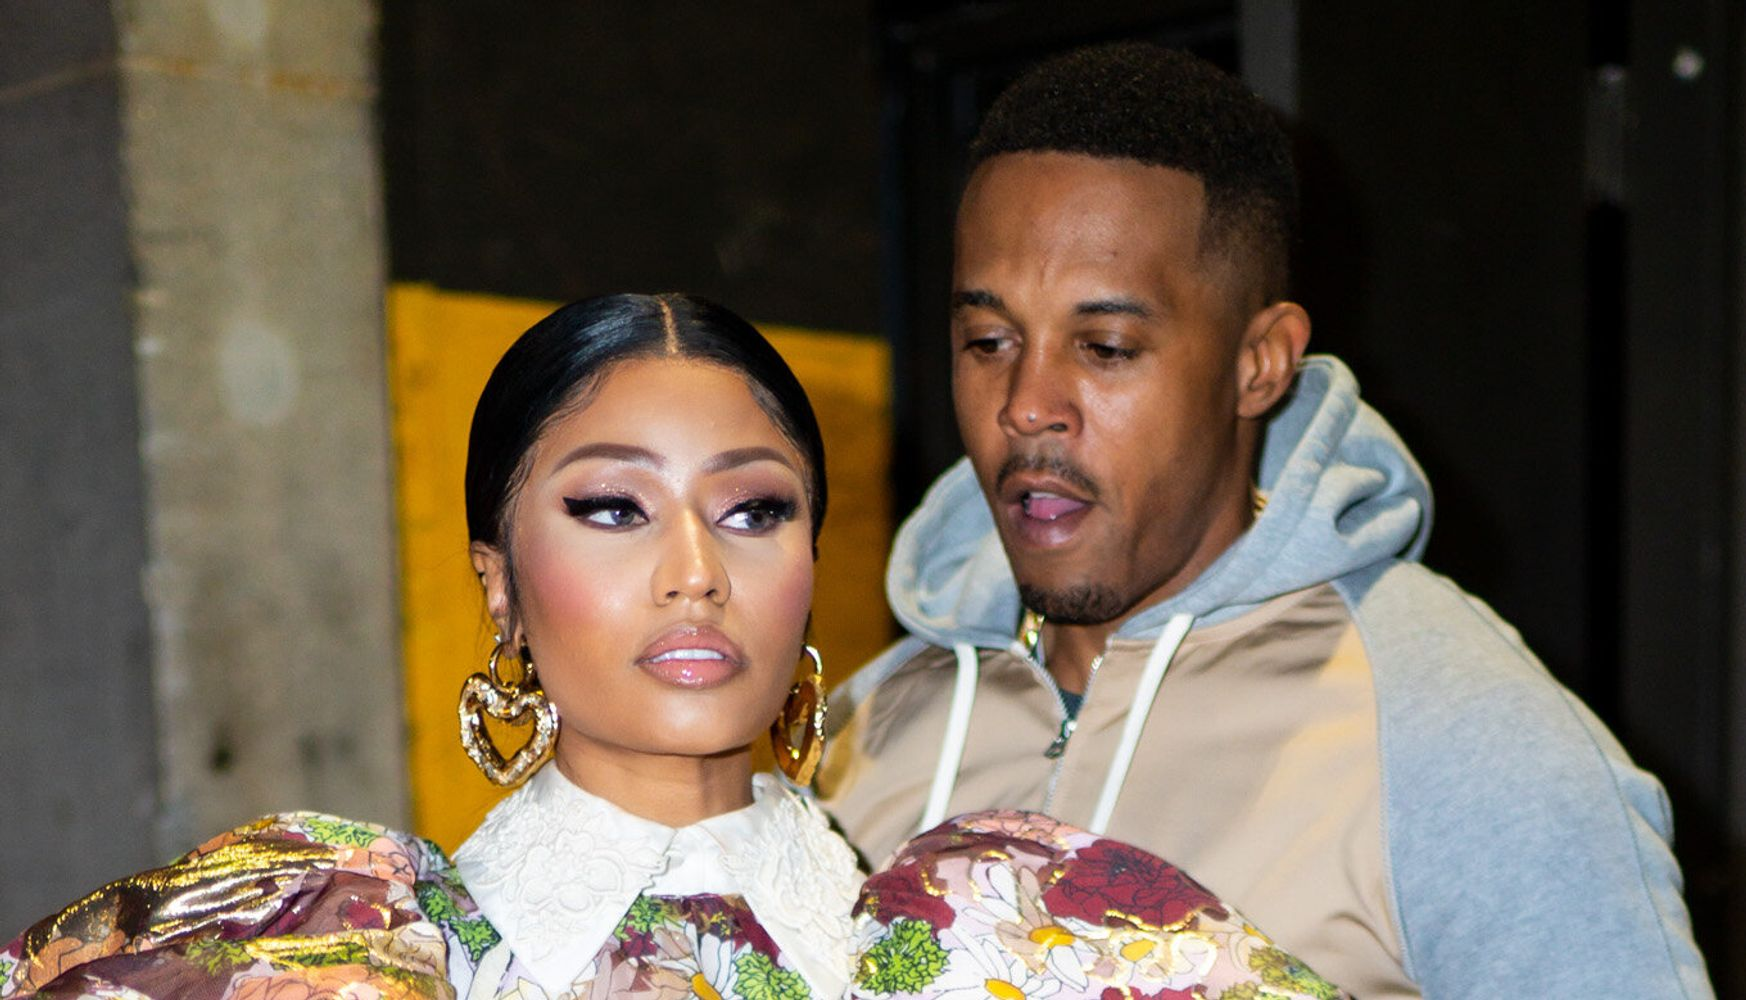 Woman Allegedly Raped By Nicki Minaj's Husband Details How The Couple Harassed Her